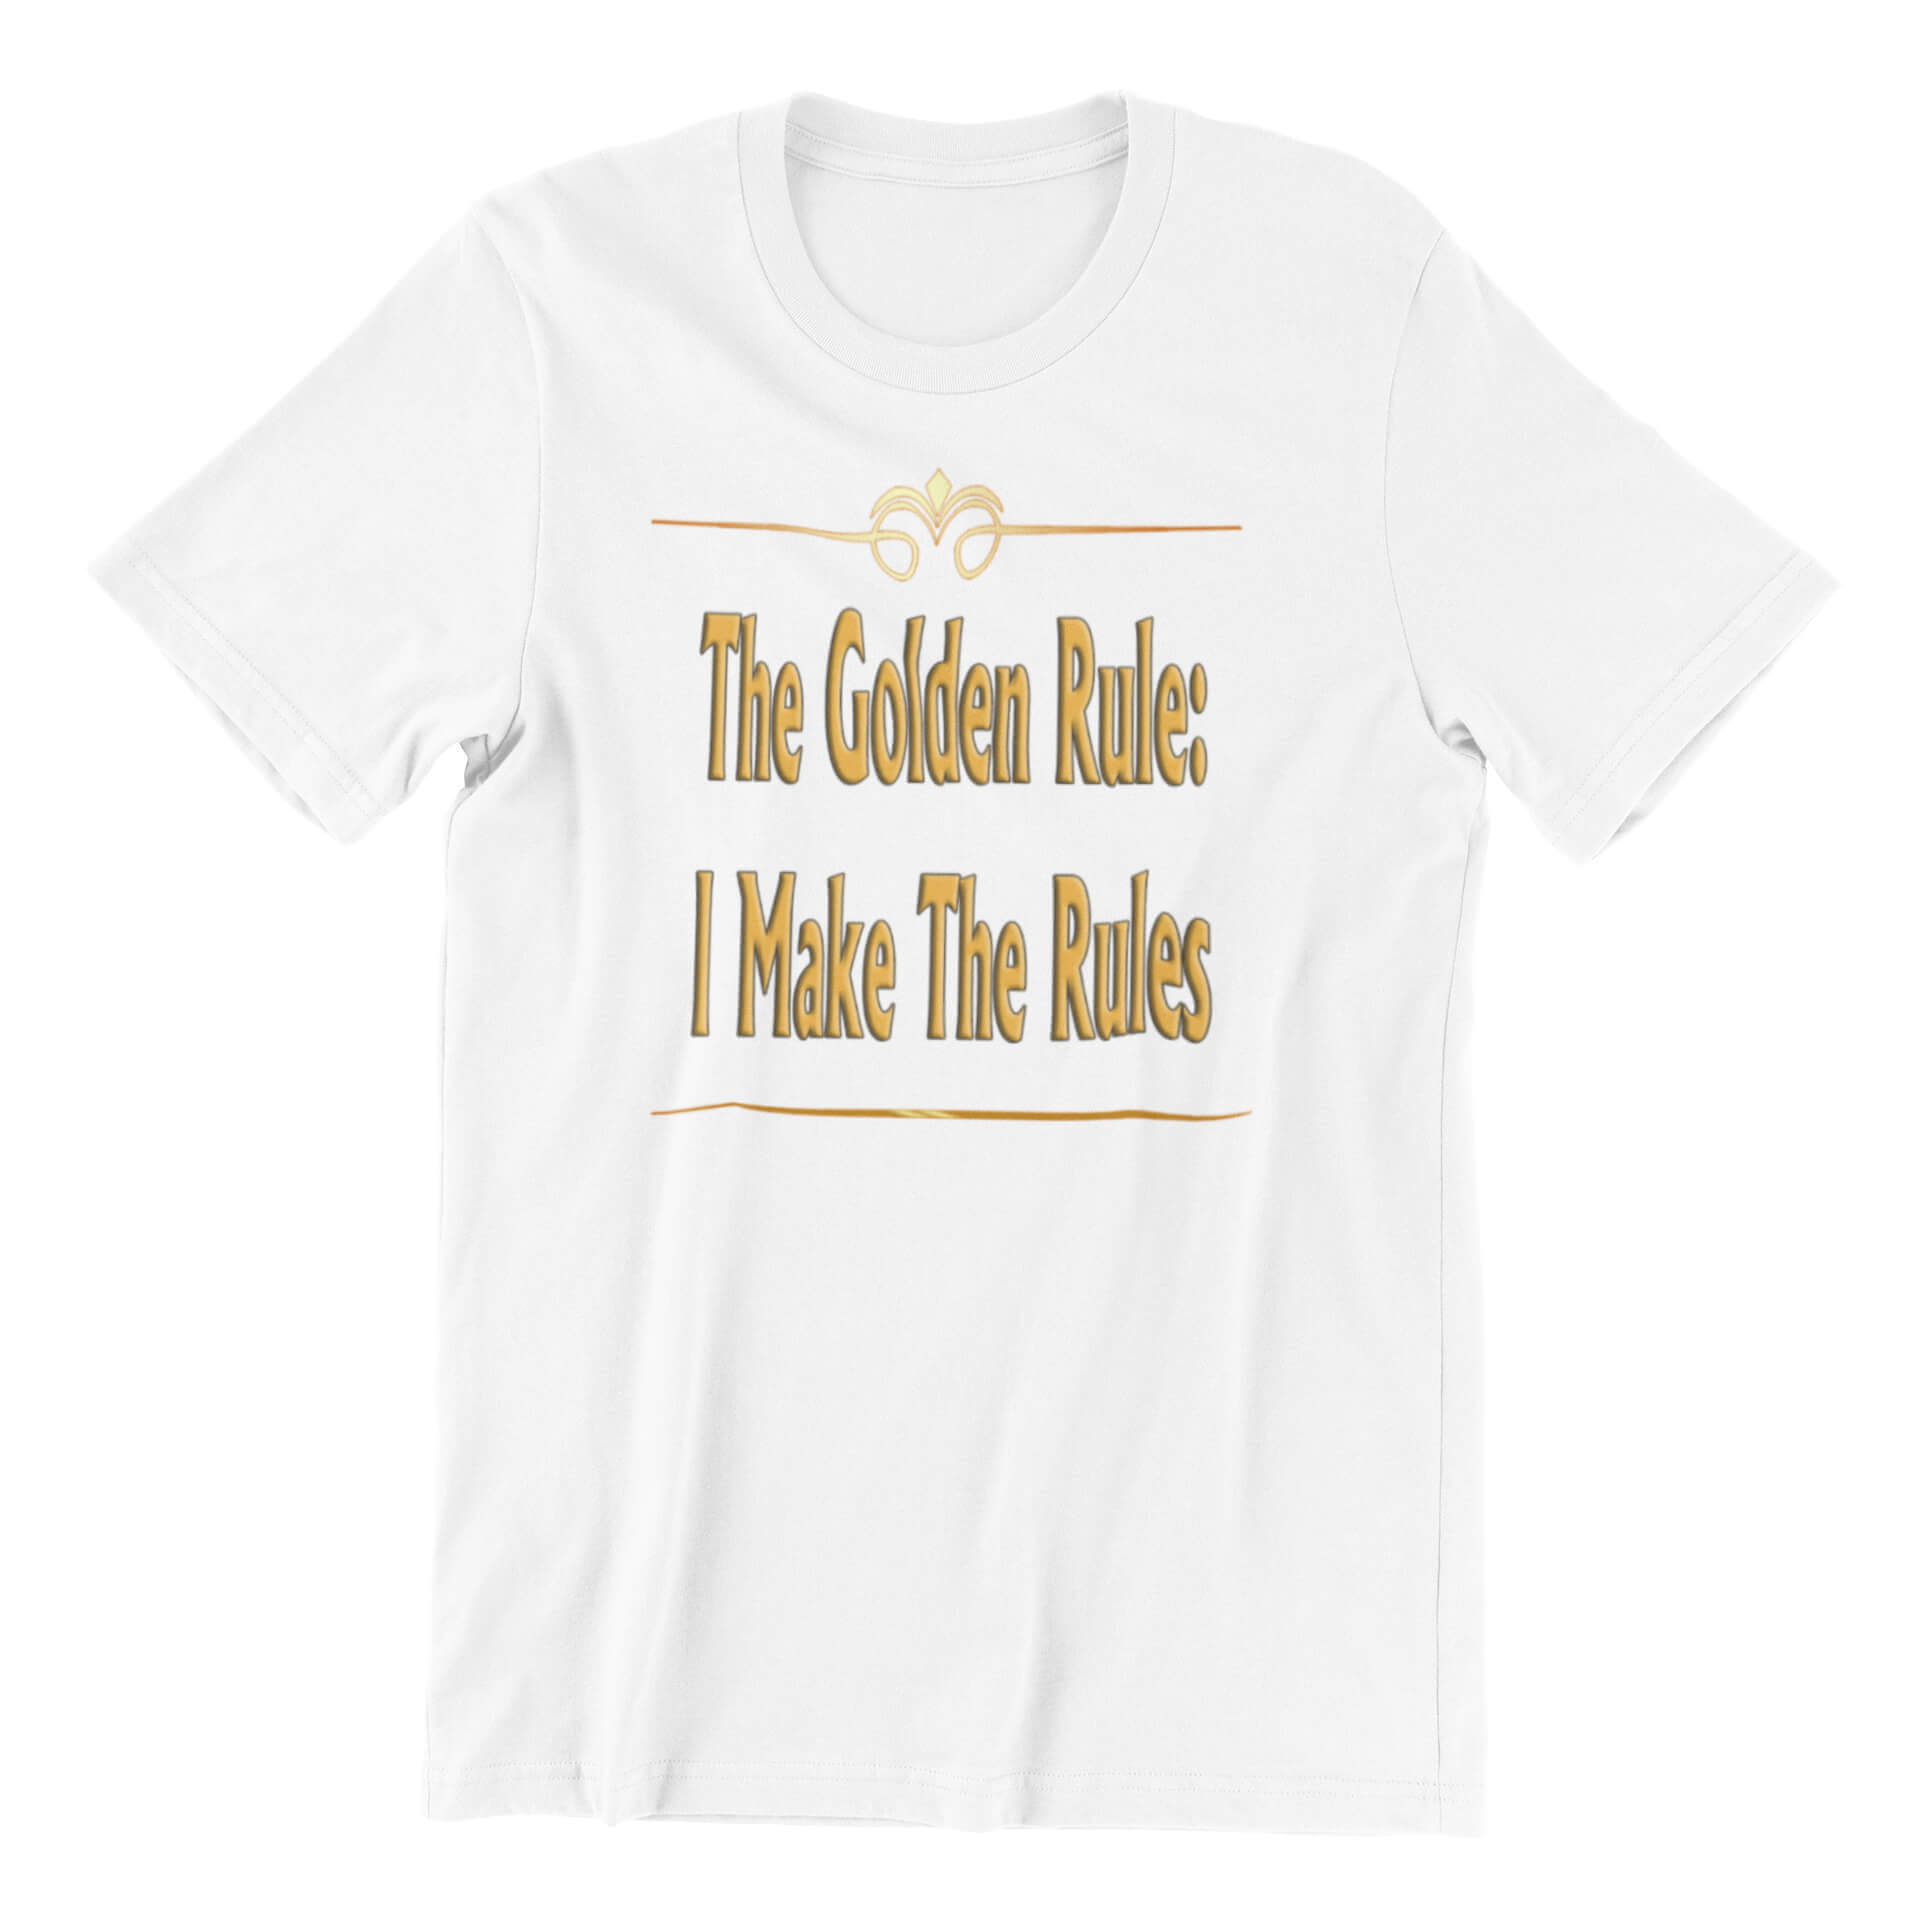 The Golden Rule: I Make The Rules T-Shirt